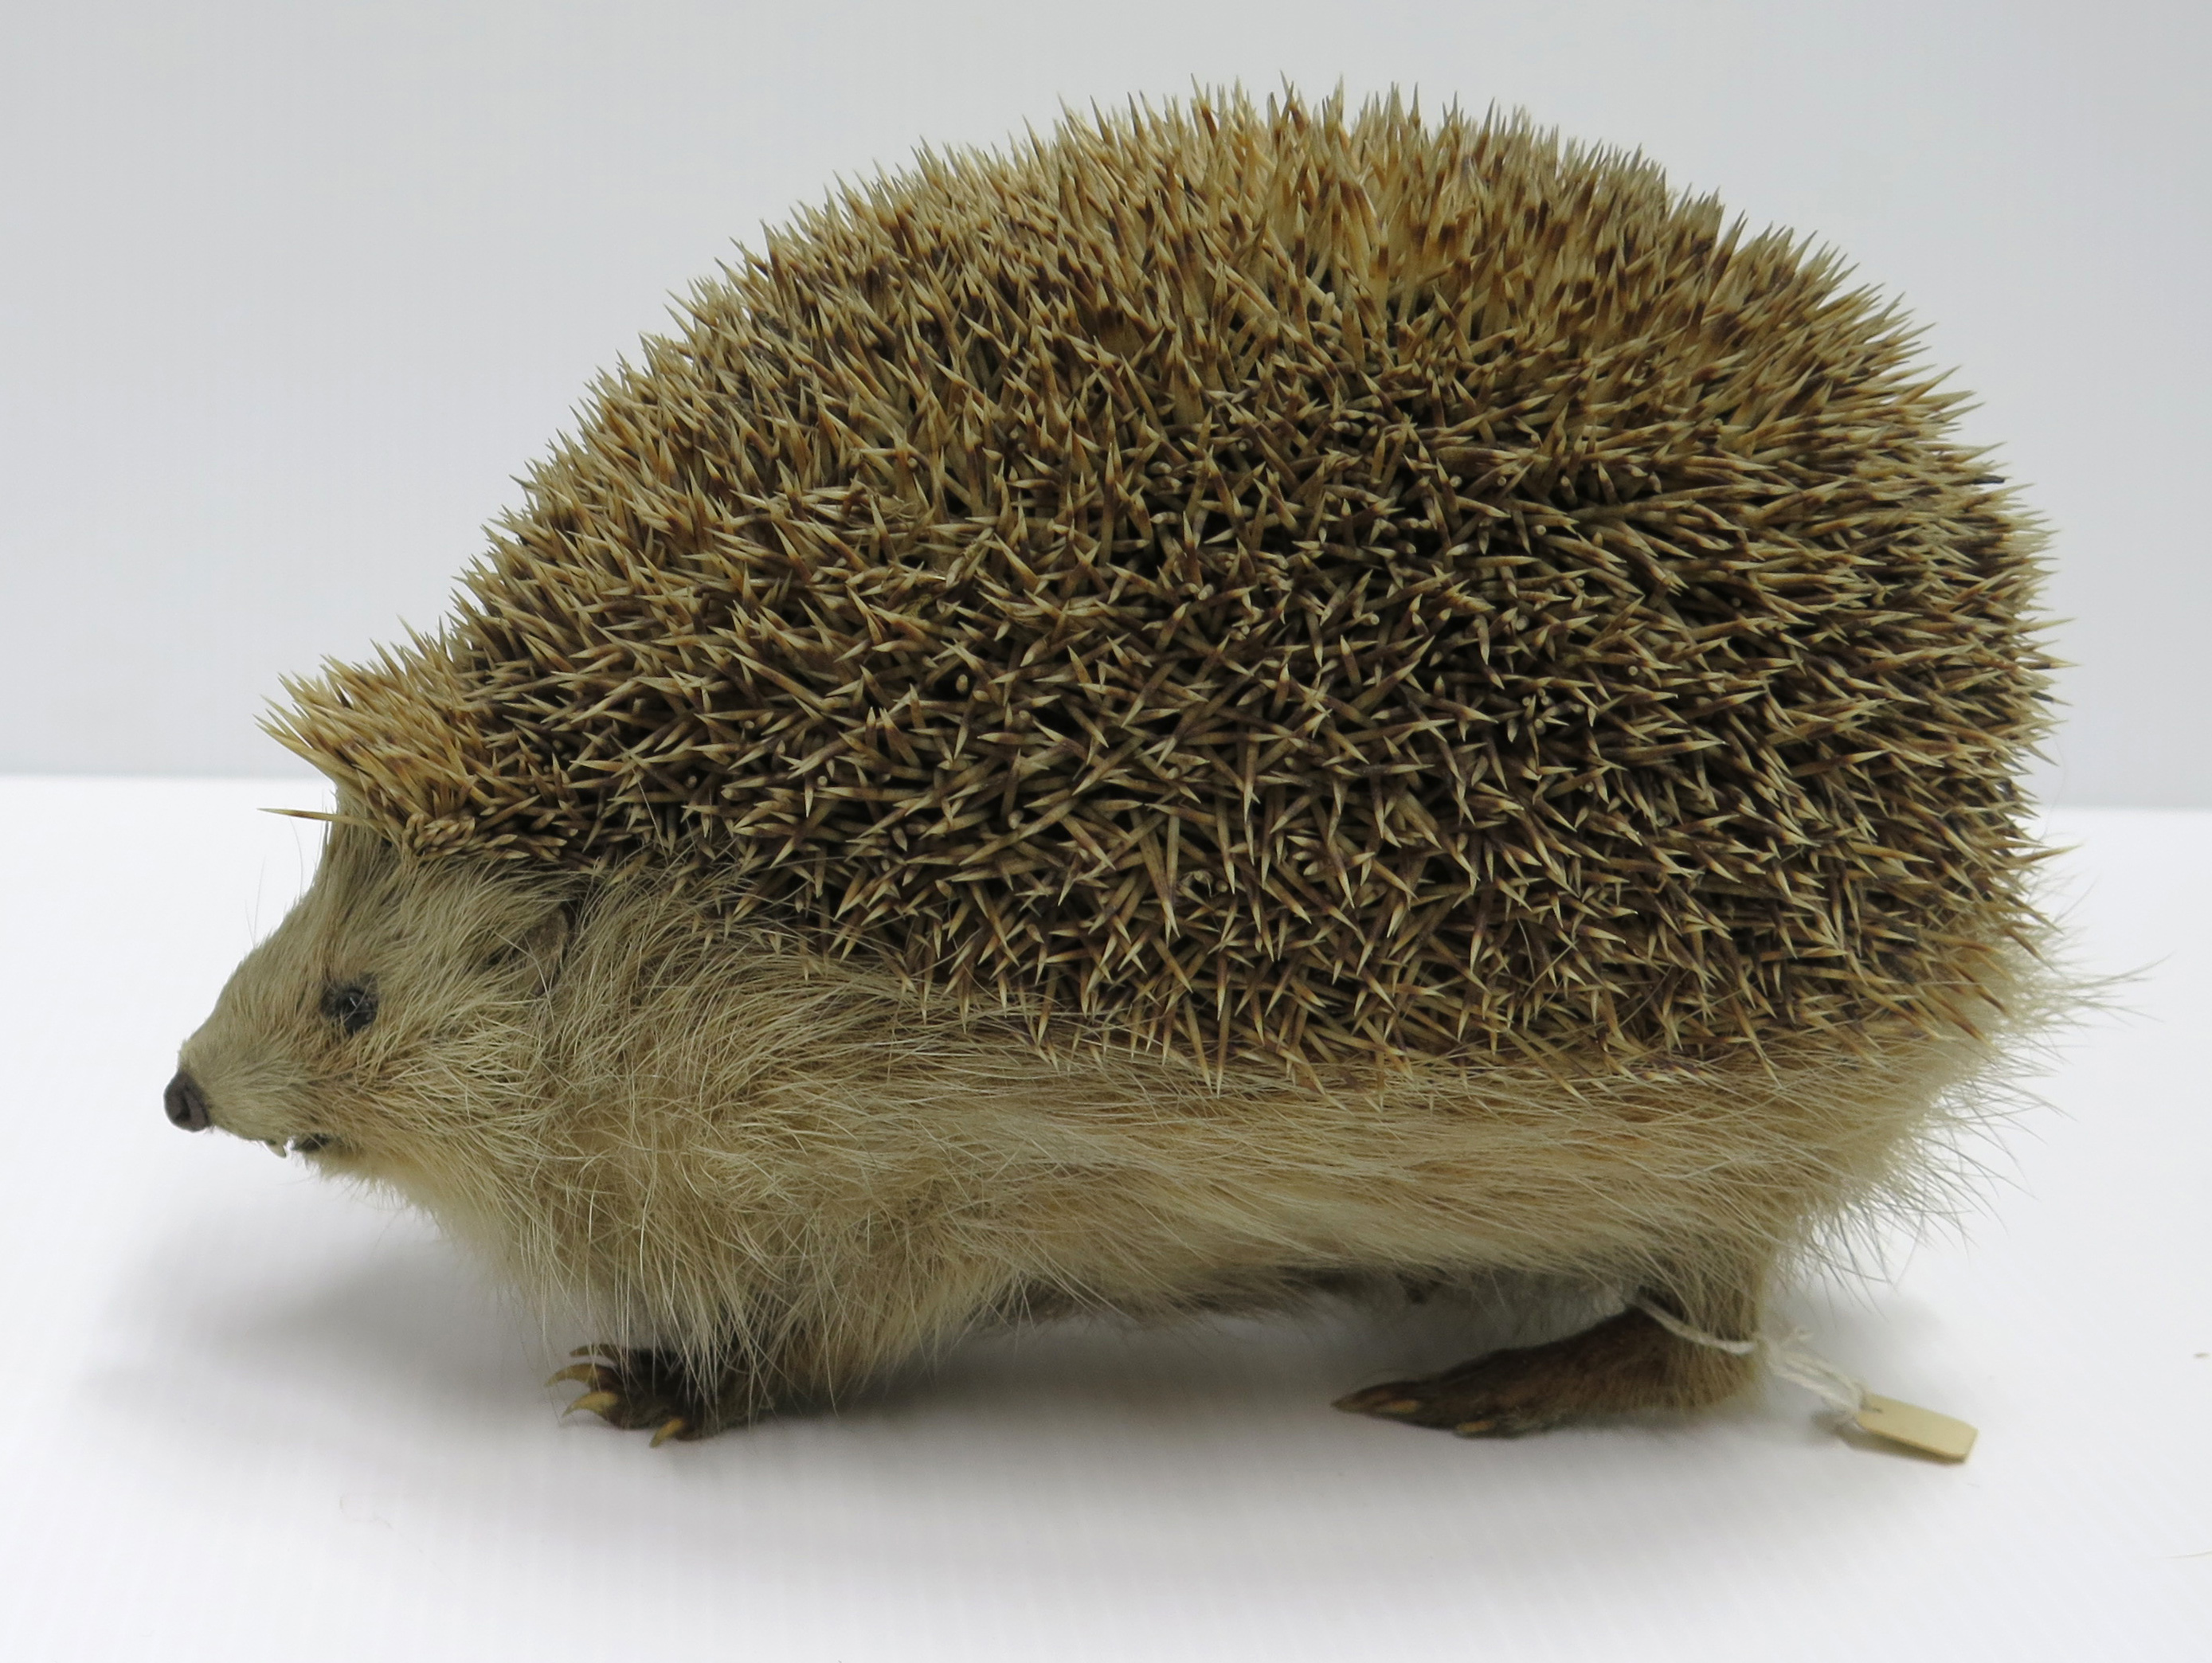 An overstuffed, taxidermy european hedgehog. Erinaceus europaeus, University Museum of Zoology collection. Copyright University of Cambridge